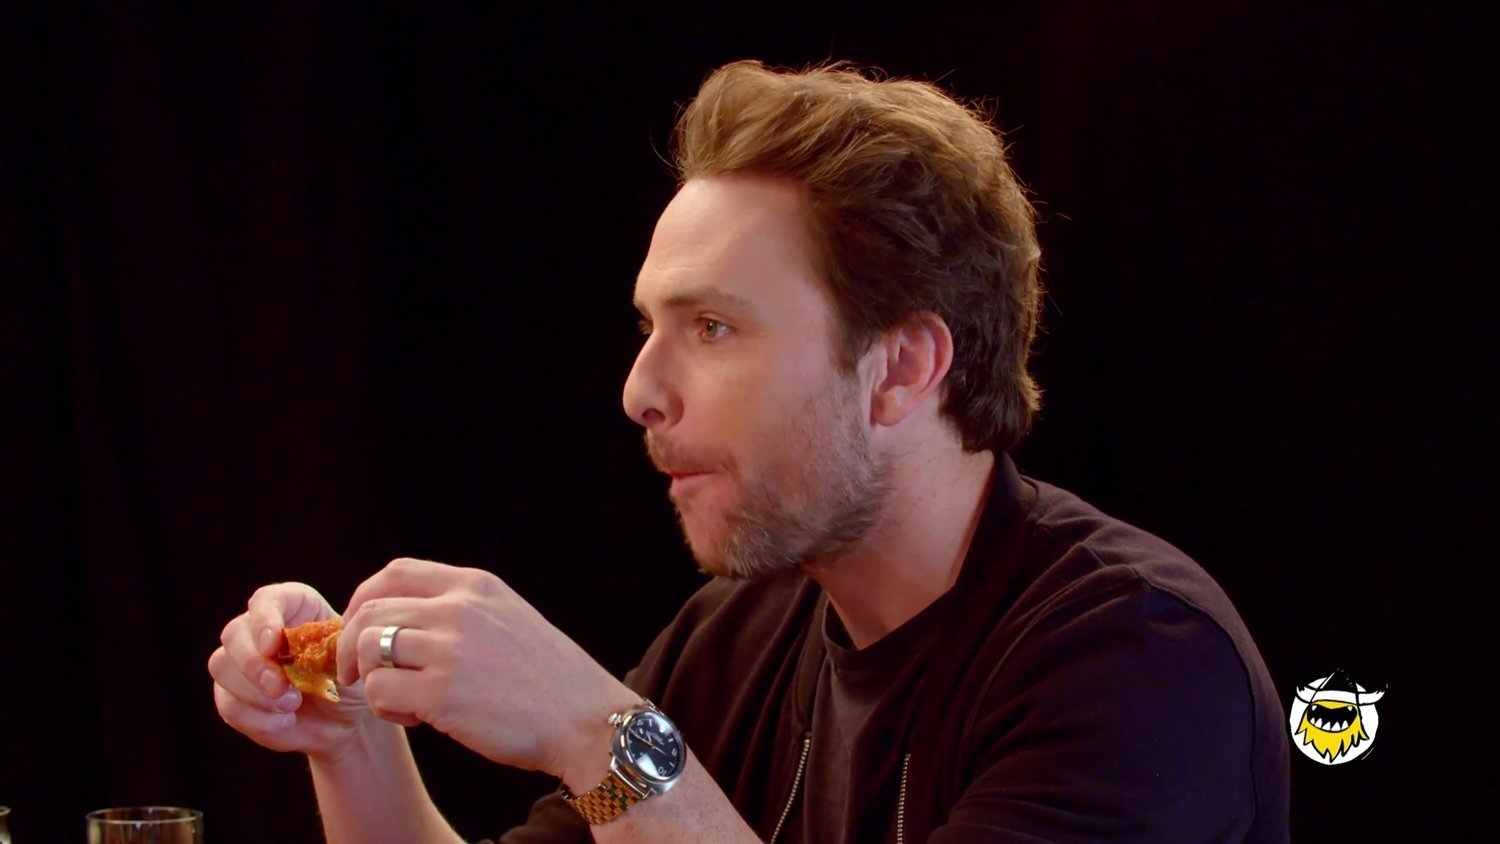 Charlie Day Eats Spicy Wings In Great Interview